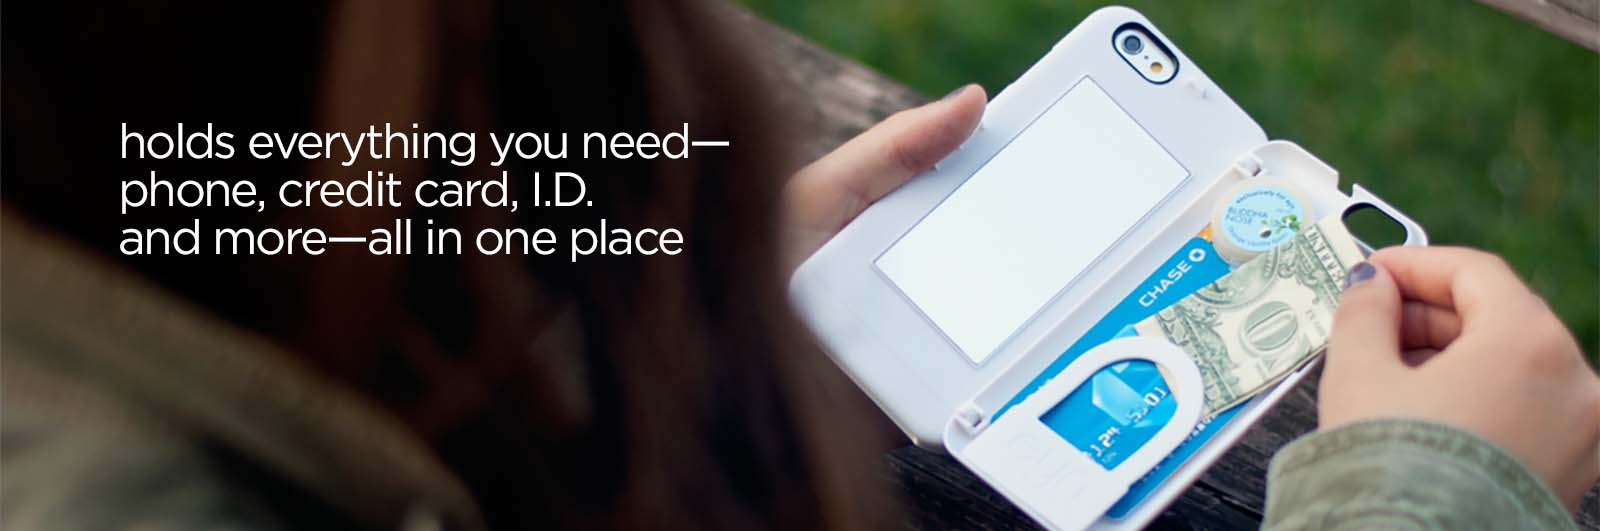 holds everything you need: phone, credit cards, ID and more -- all in one place